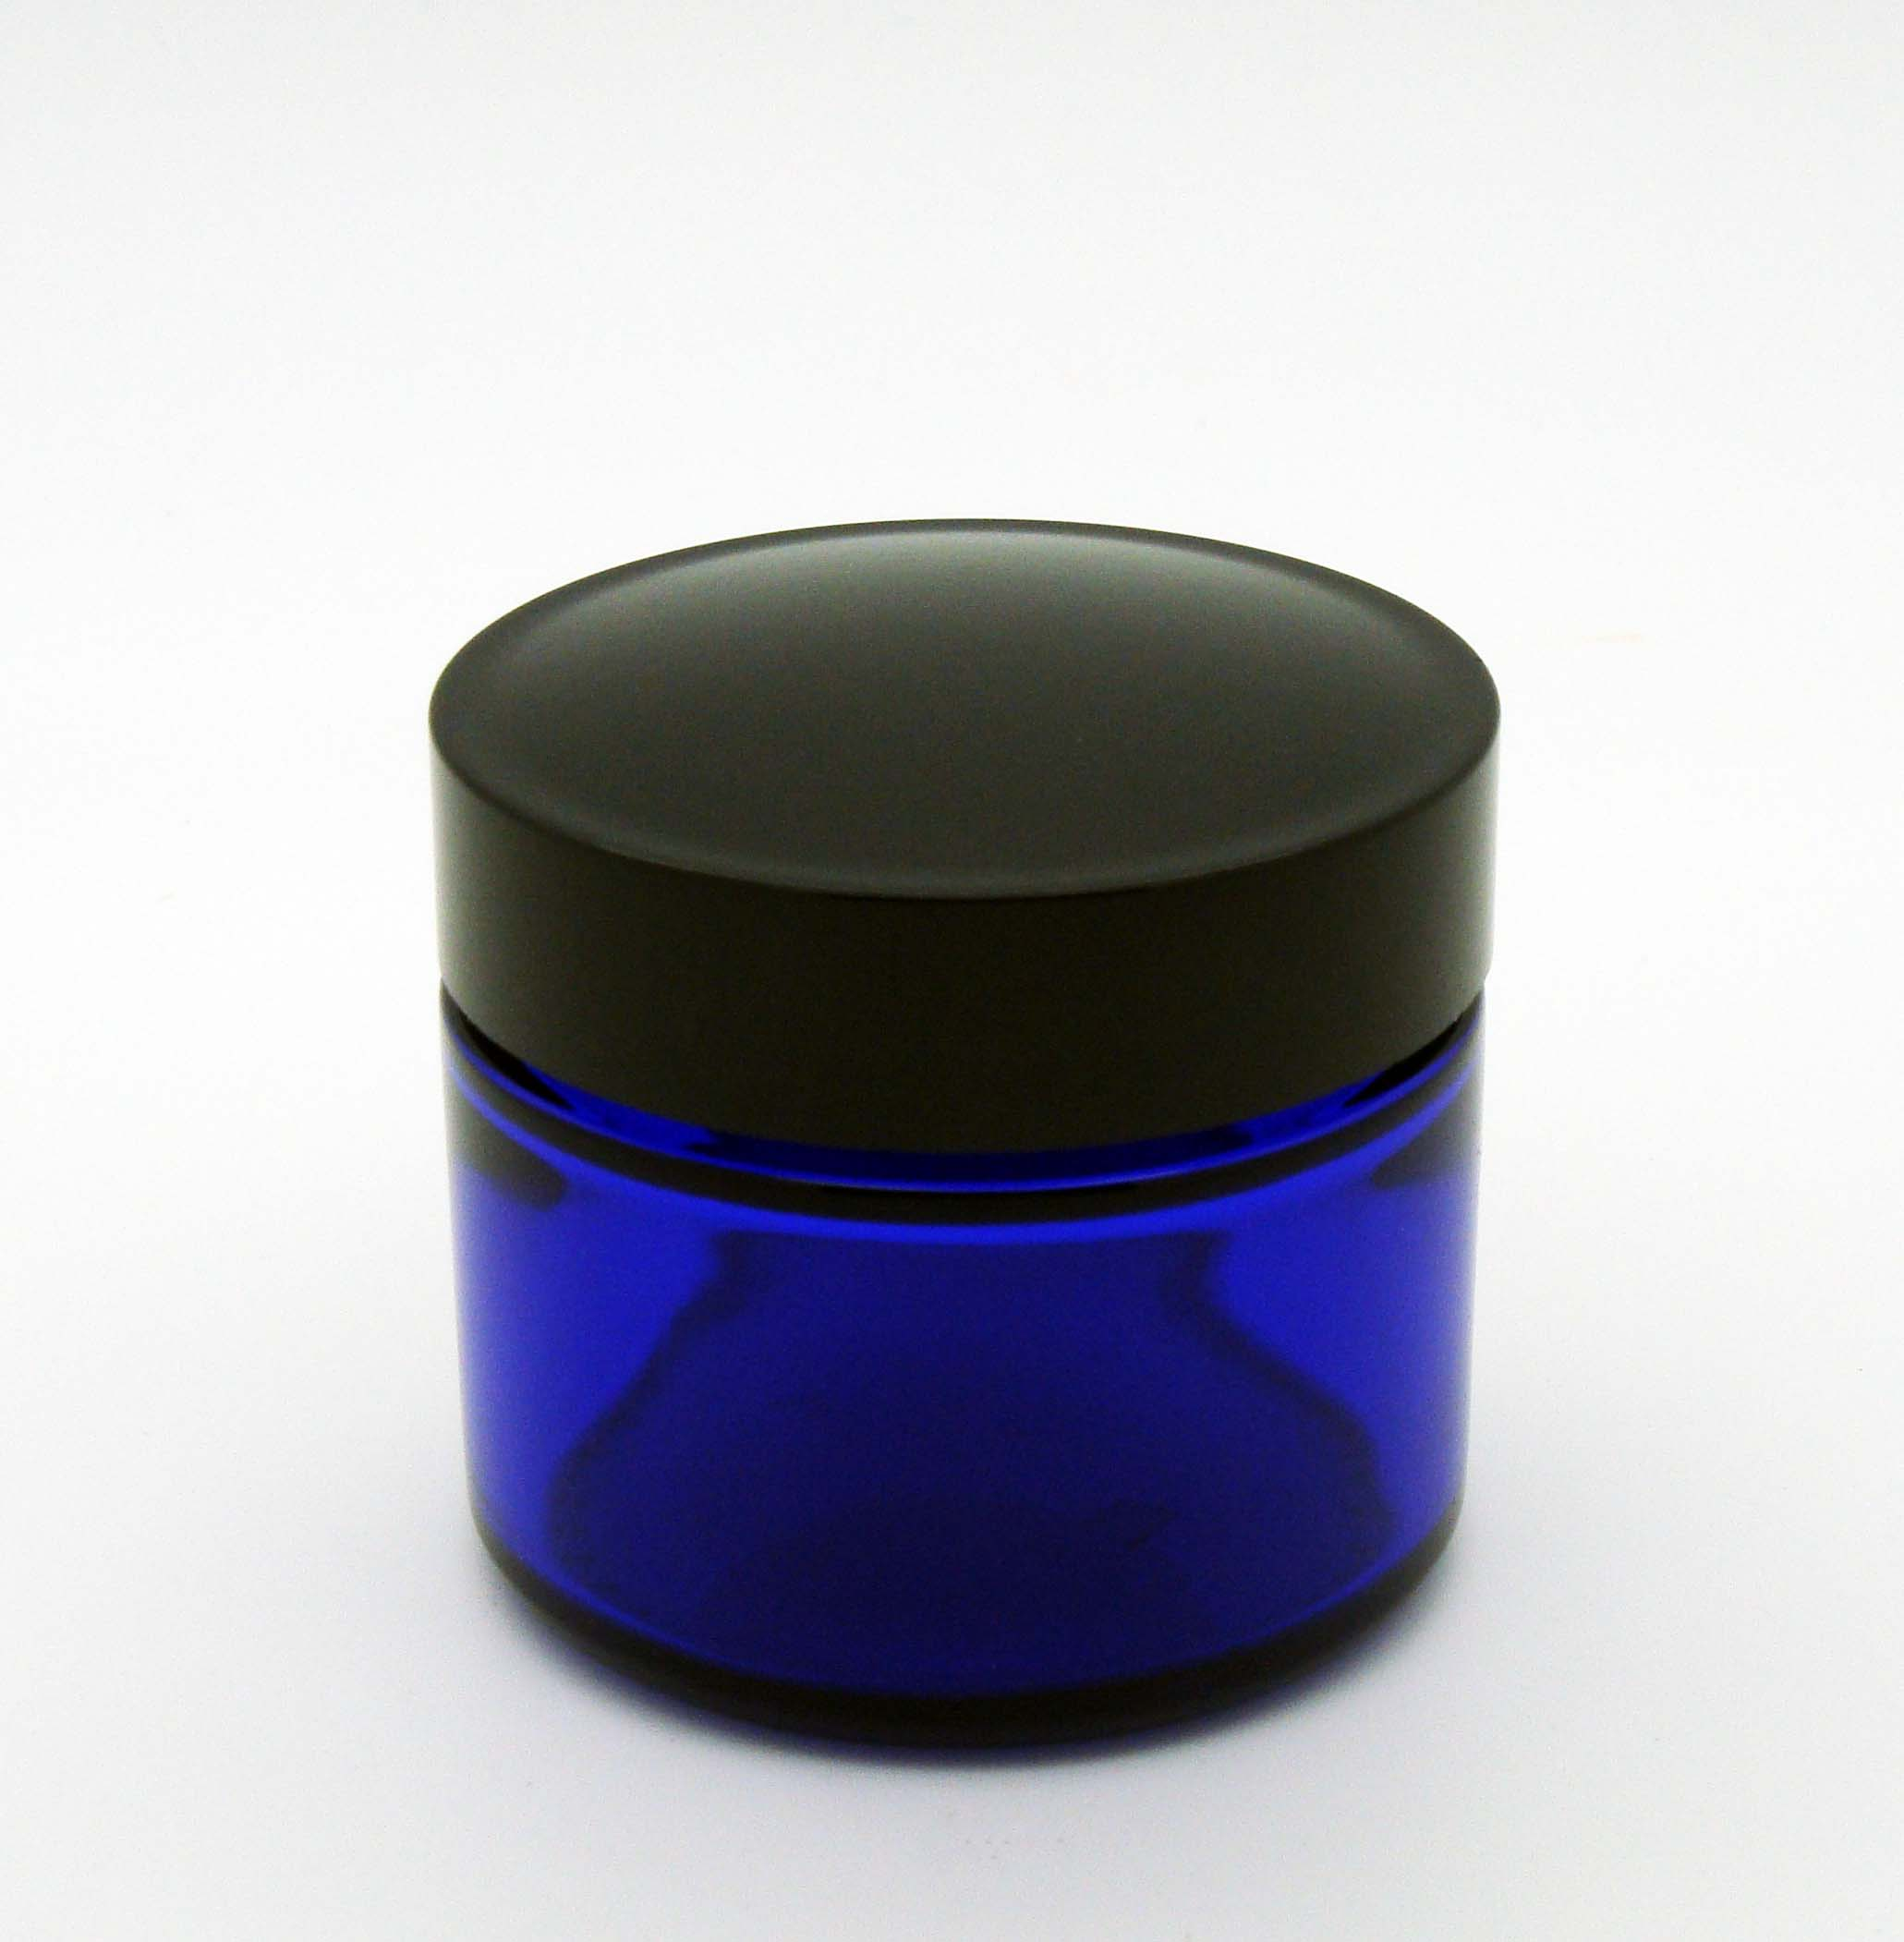 Blue Cobalt Glass Jar 50 grams